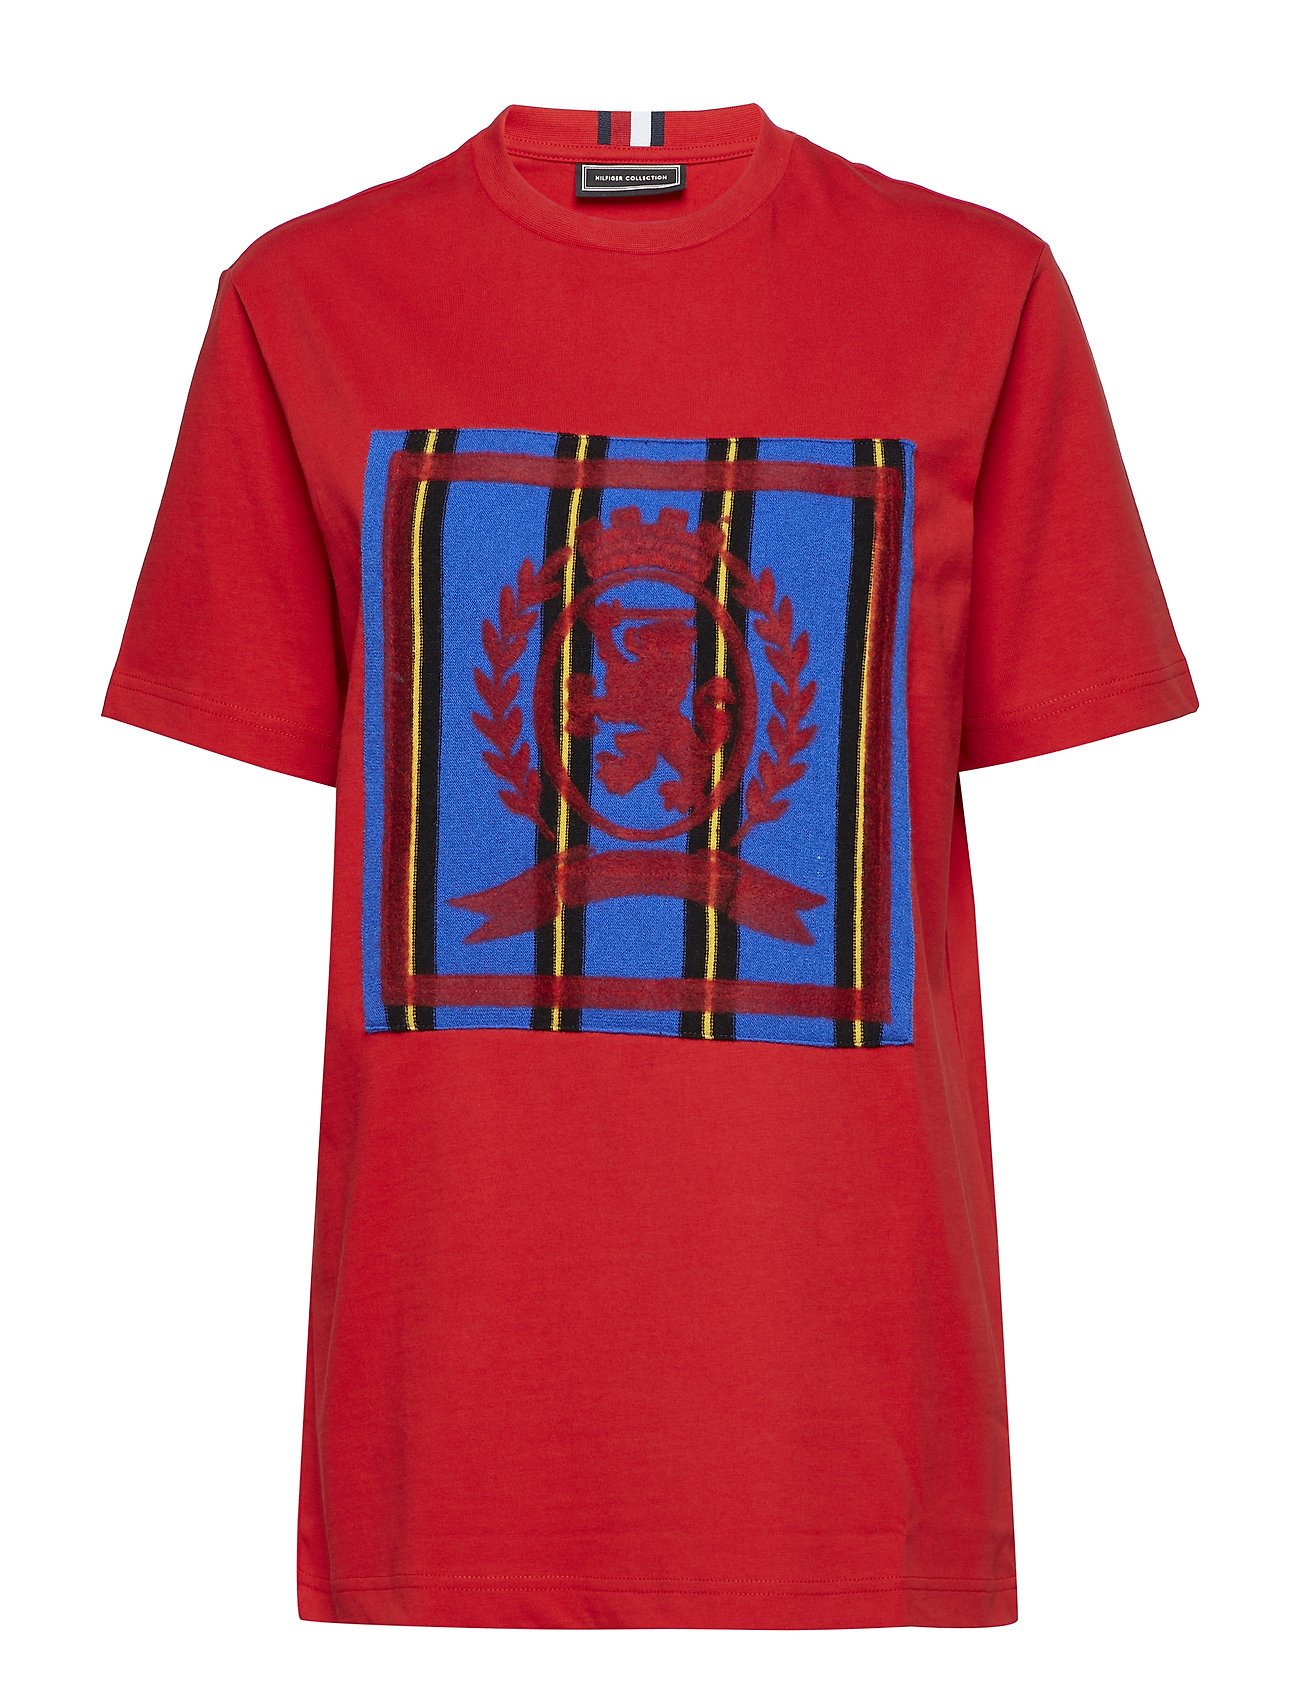 Hilfiger Collection HC CREST TEE - BARBADOS CHERRY